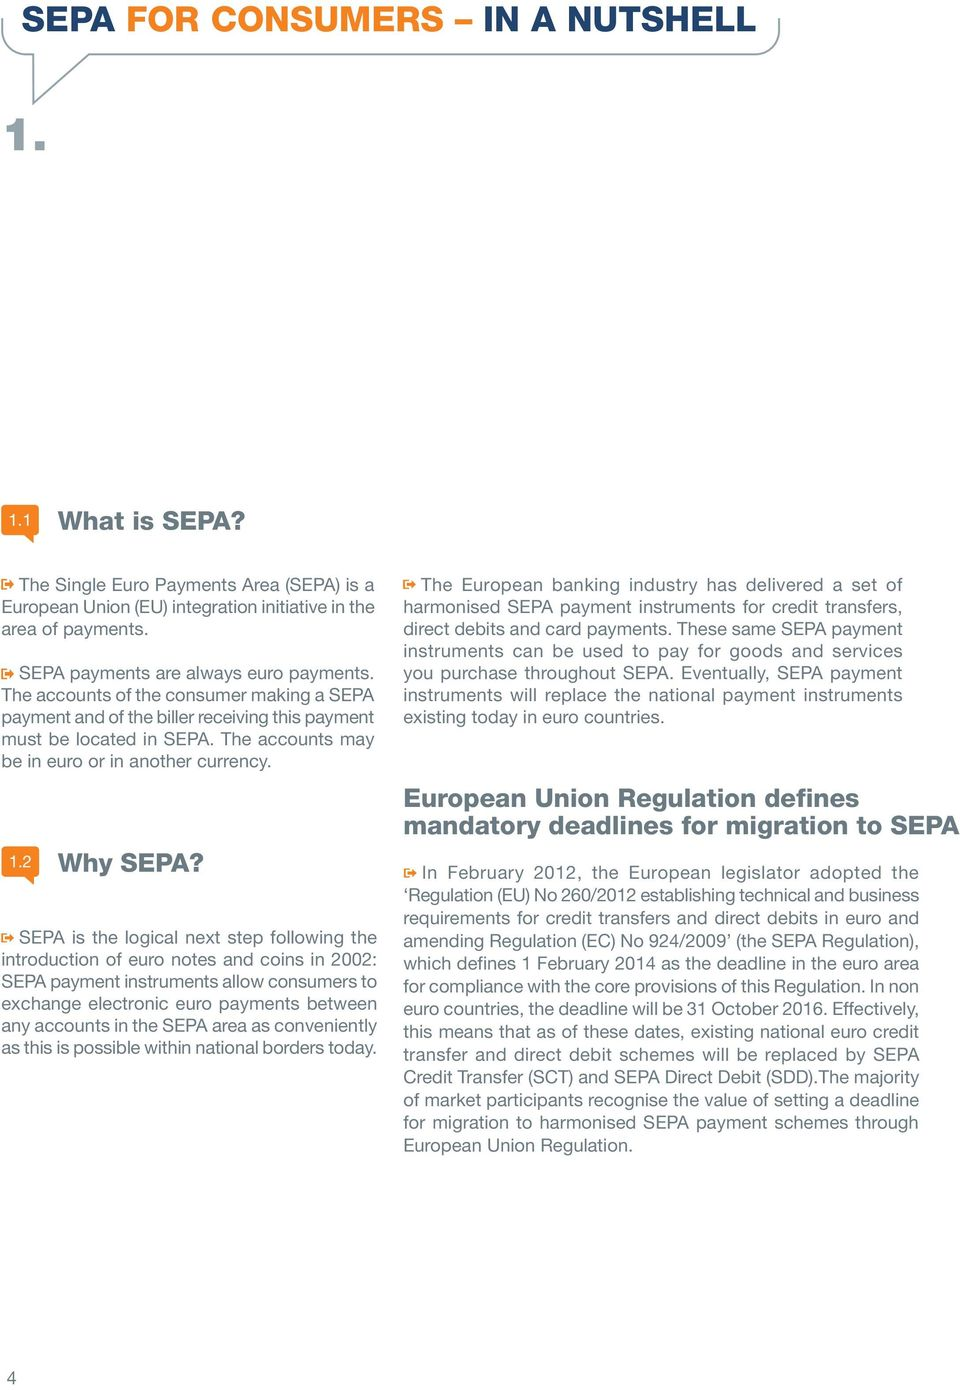 The accounts may be in euro or in another currency. 1.2 Why SEPA?